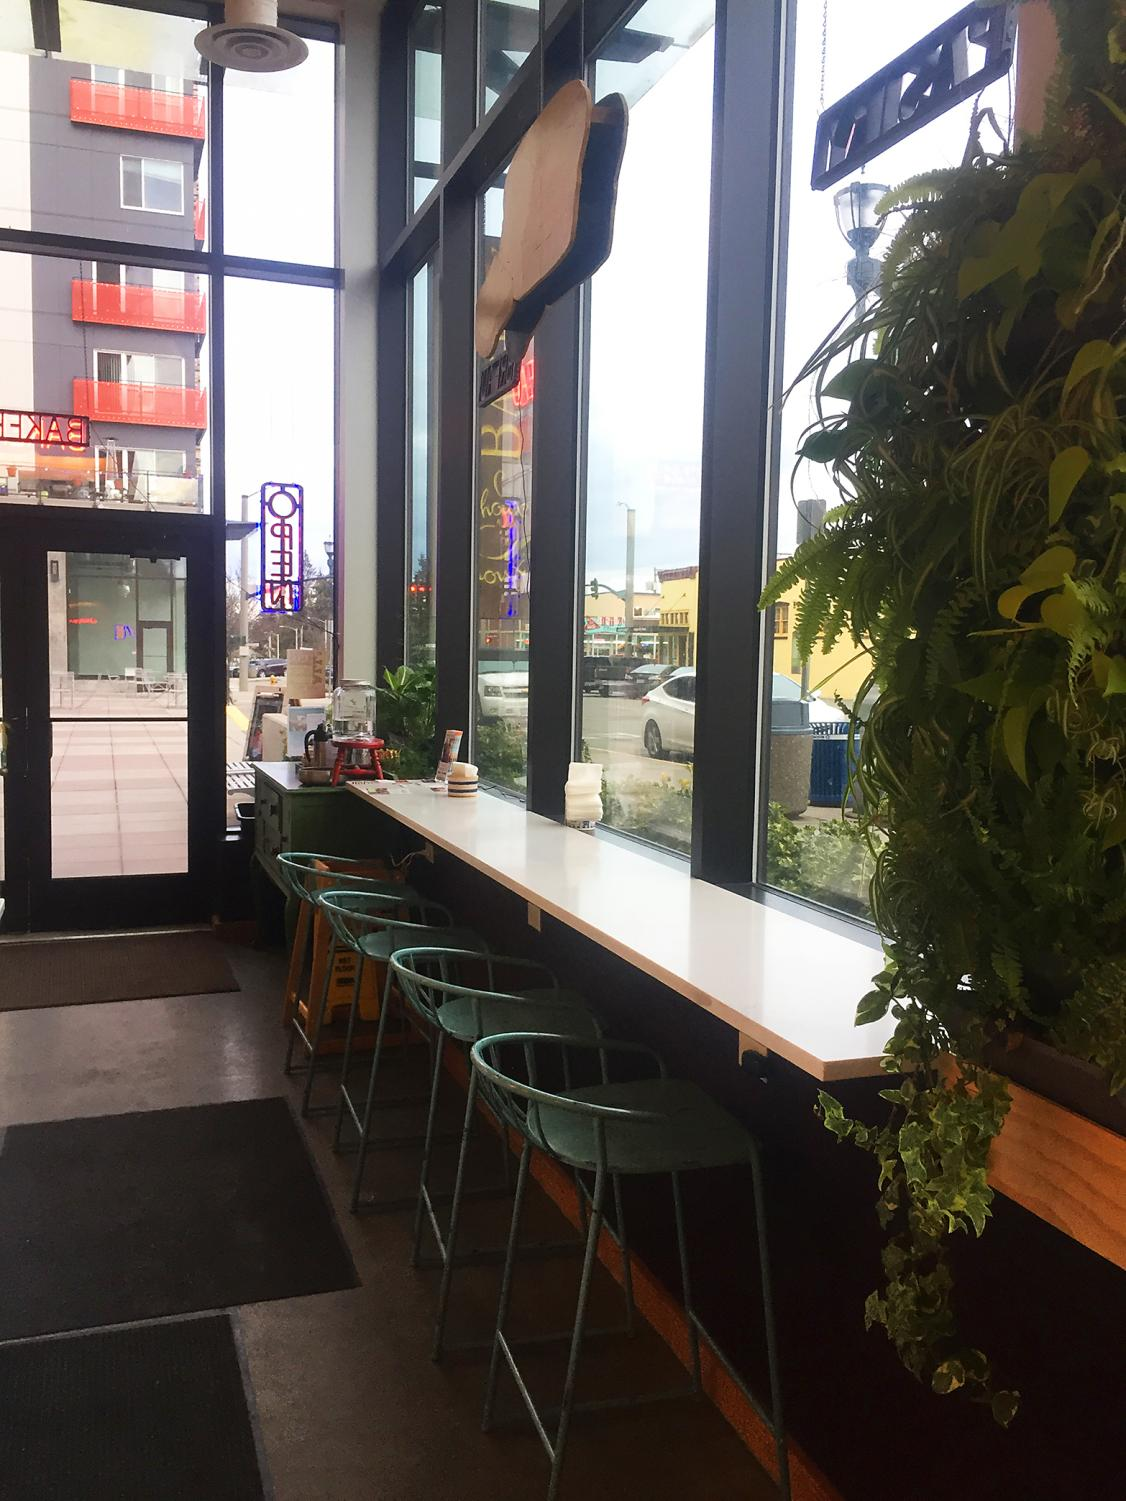 Choux+Choux+Bakery%27s+counter+seating